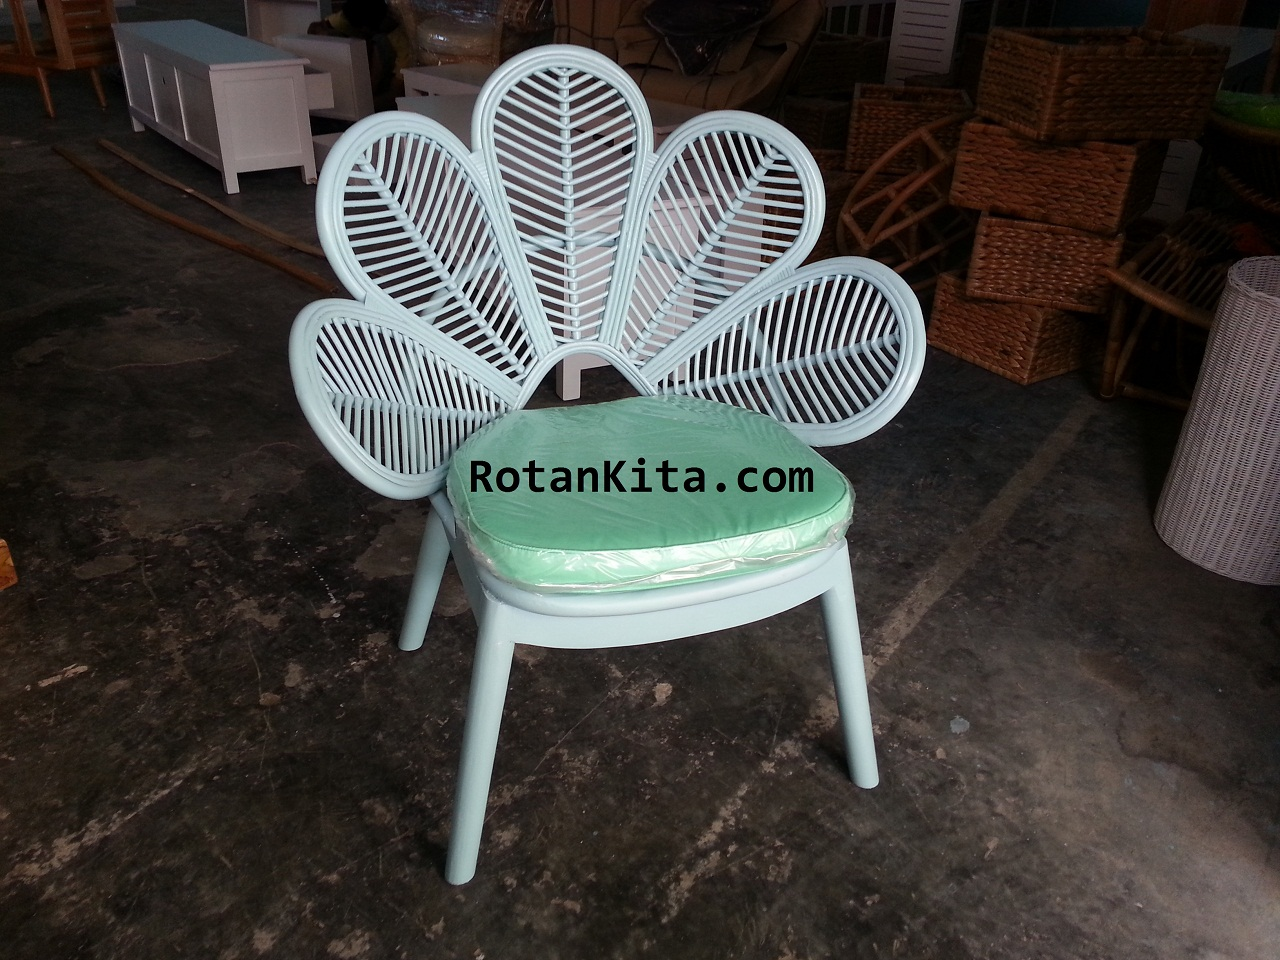 RTK27 3 C Flower Chair | Code: RTK27